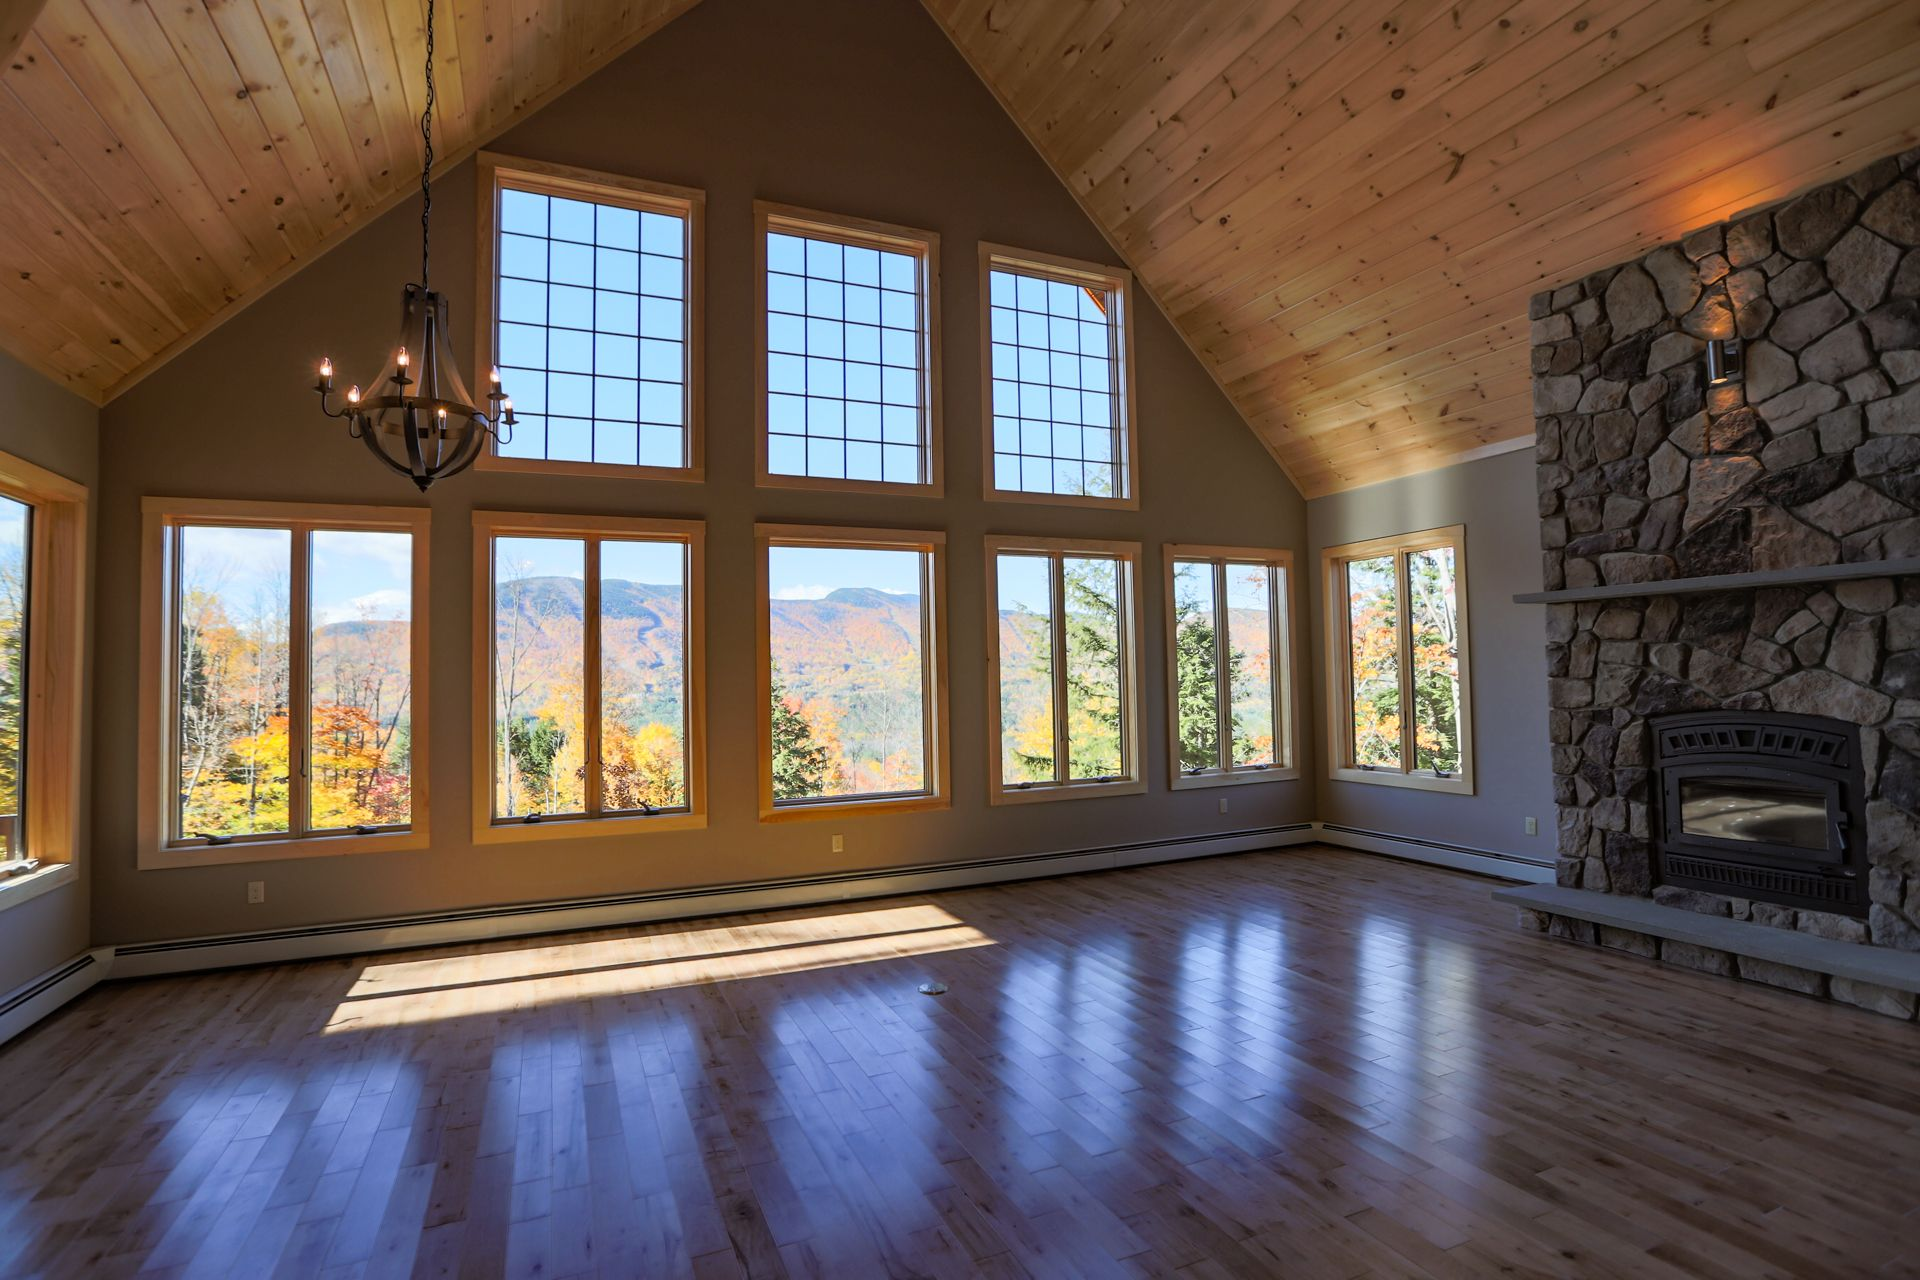 Living space with fireplace and mountain views